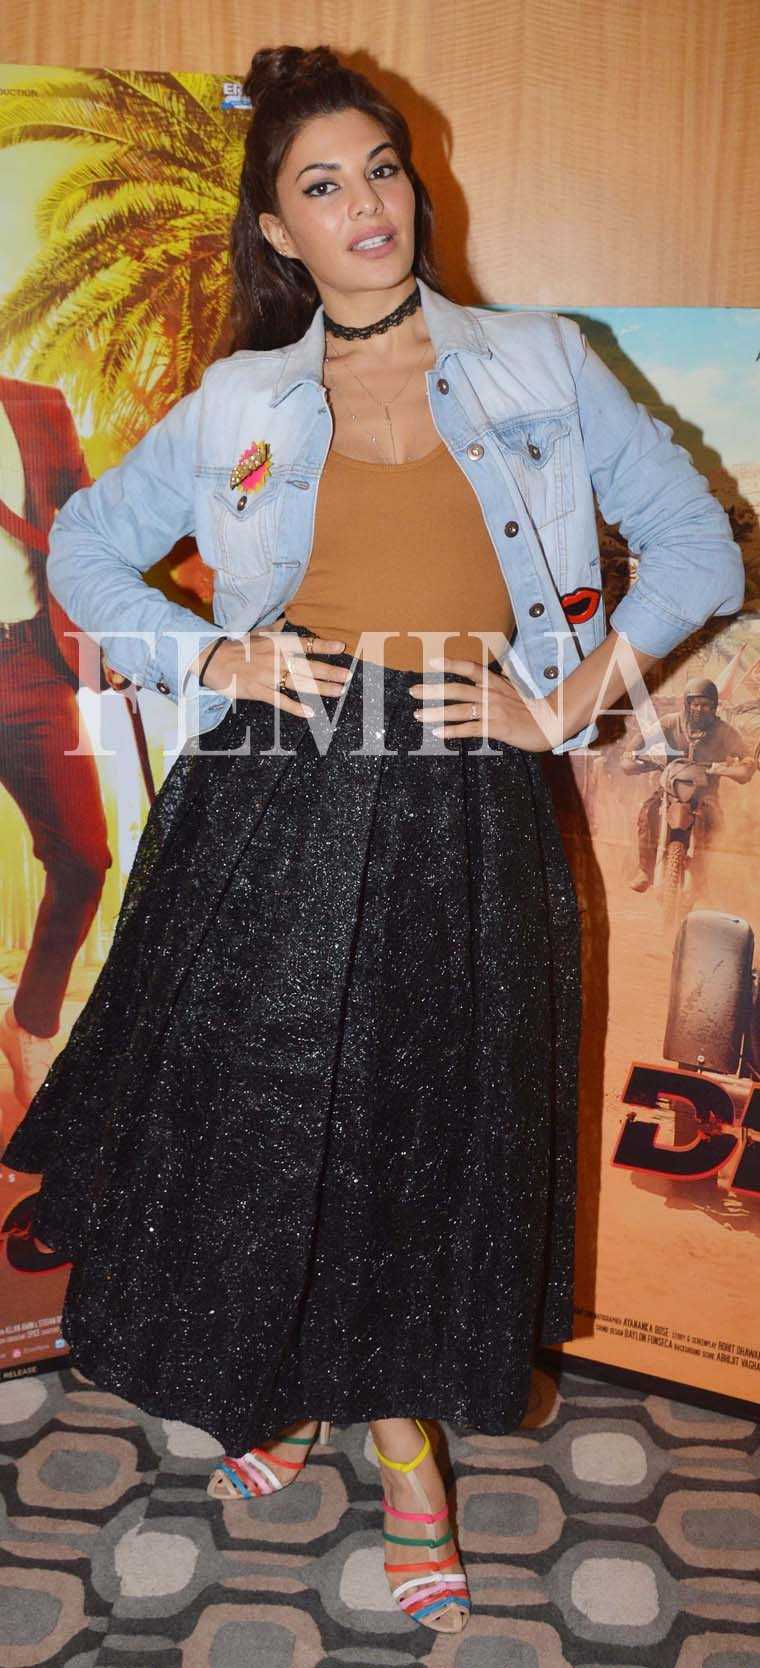 JACQUELINE FERNANDEZ For Dishoom promotions, the actor has been rocking a lot of '90s-inspired looks. Case in point this denim jacket worn over a voluminous Sameer Madan skirt, a chiker and multi-coloured strappy sandals.